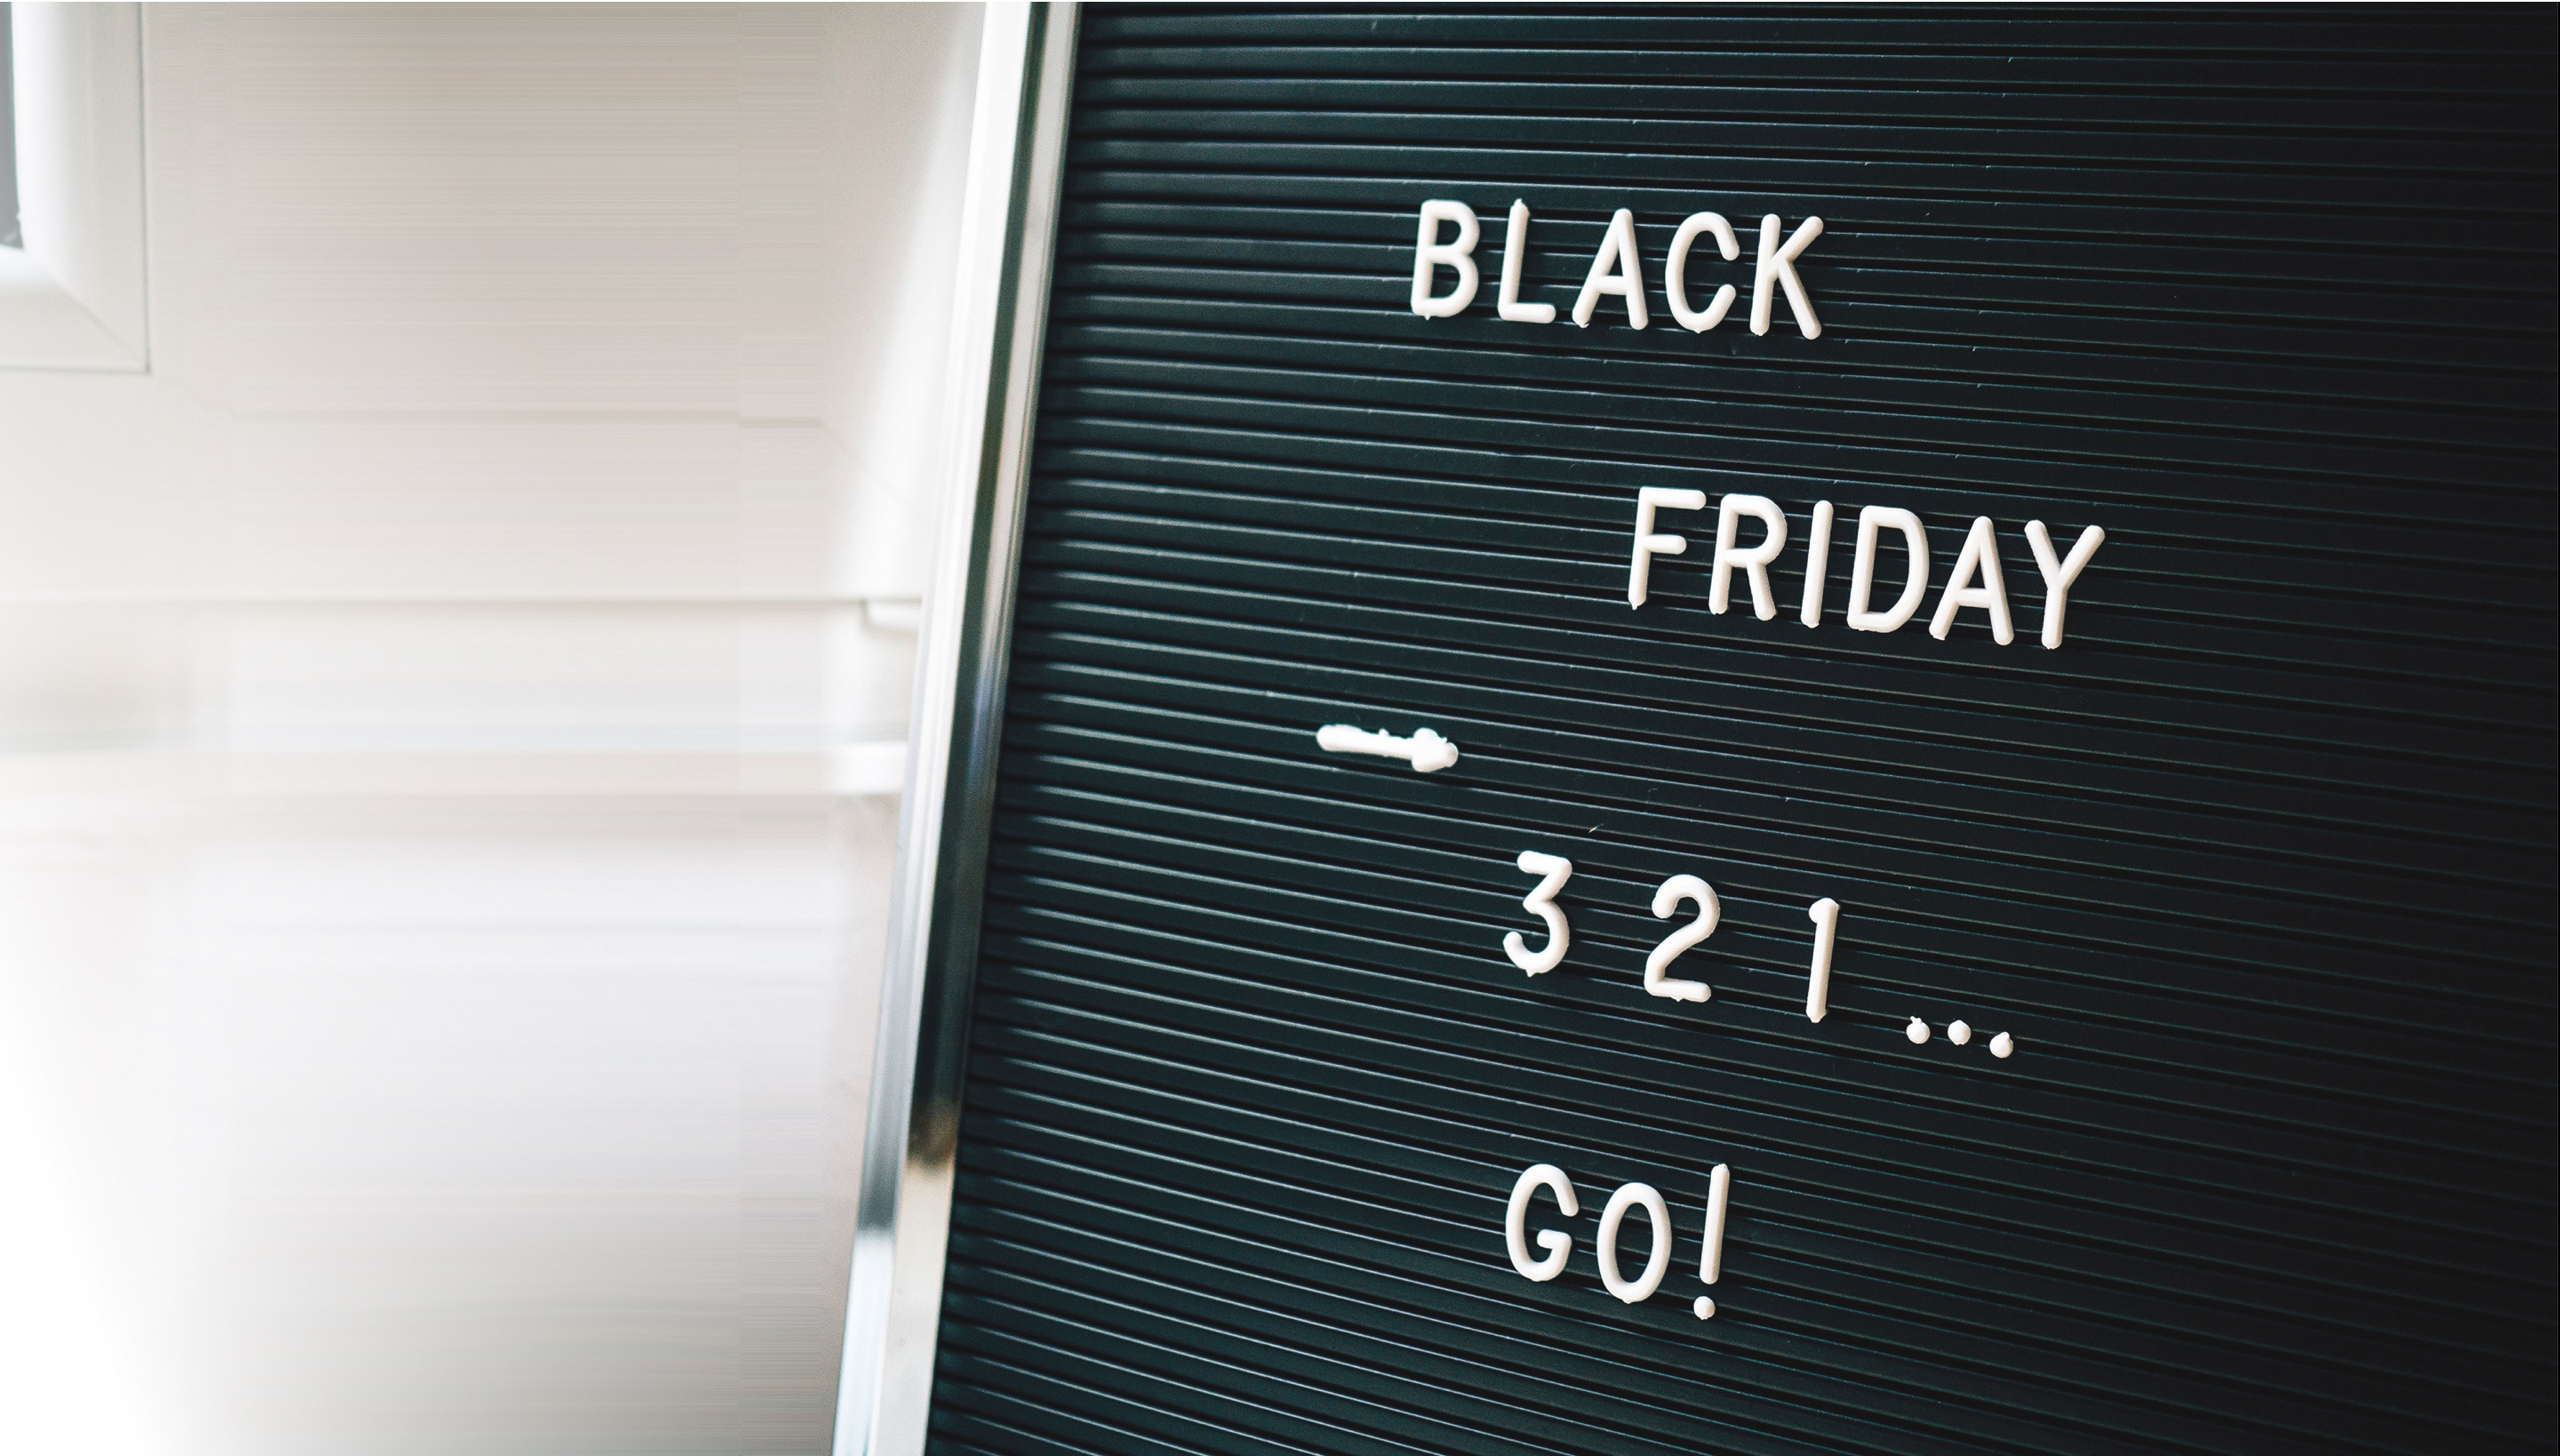 Sign promoting Black Friday sales